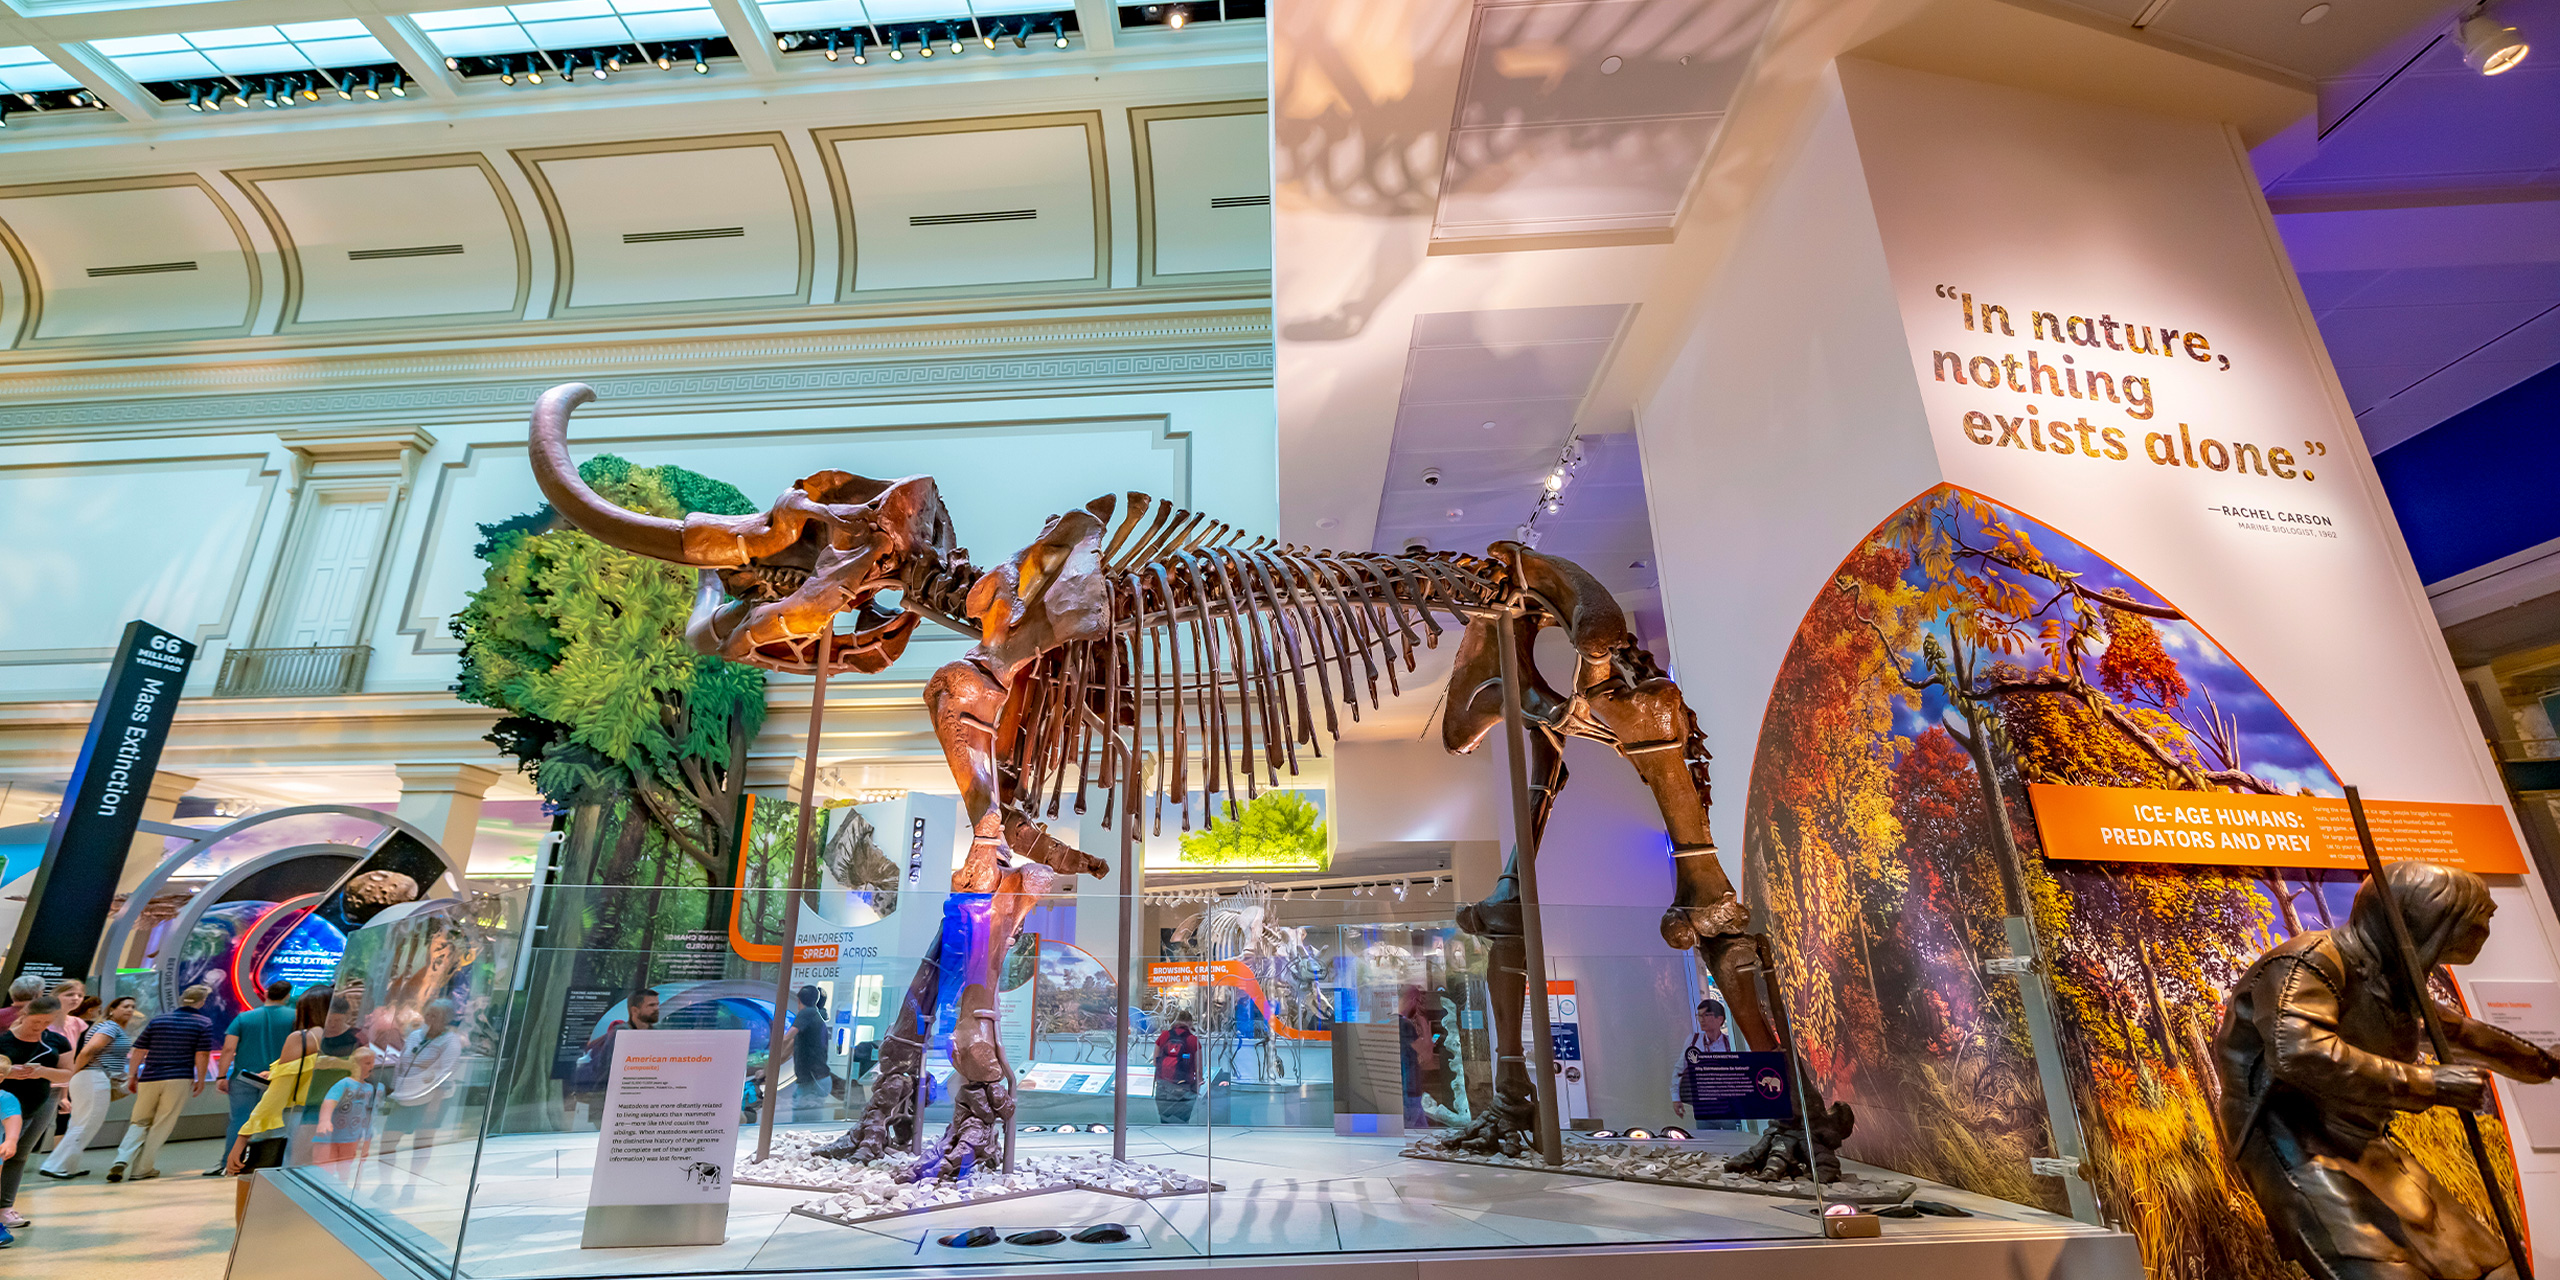 The National Museum of Natural History is a natural history museum administered by the Smithsonian Institution, located on the National Mall.